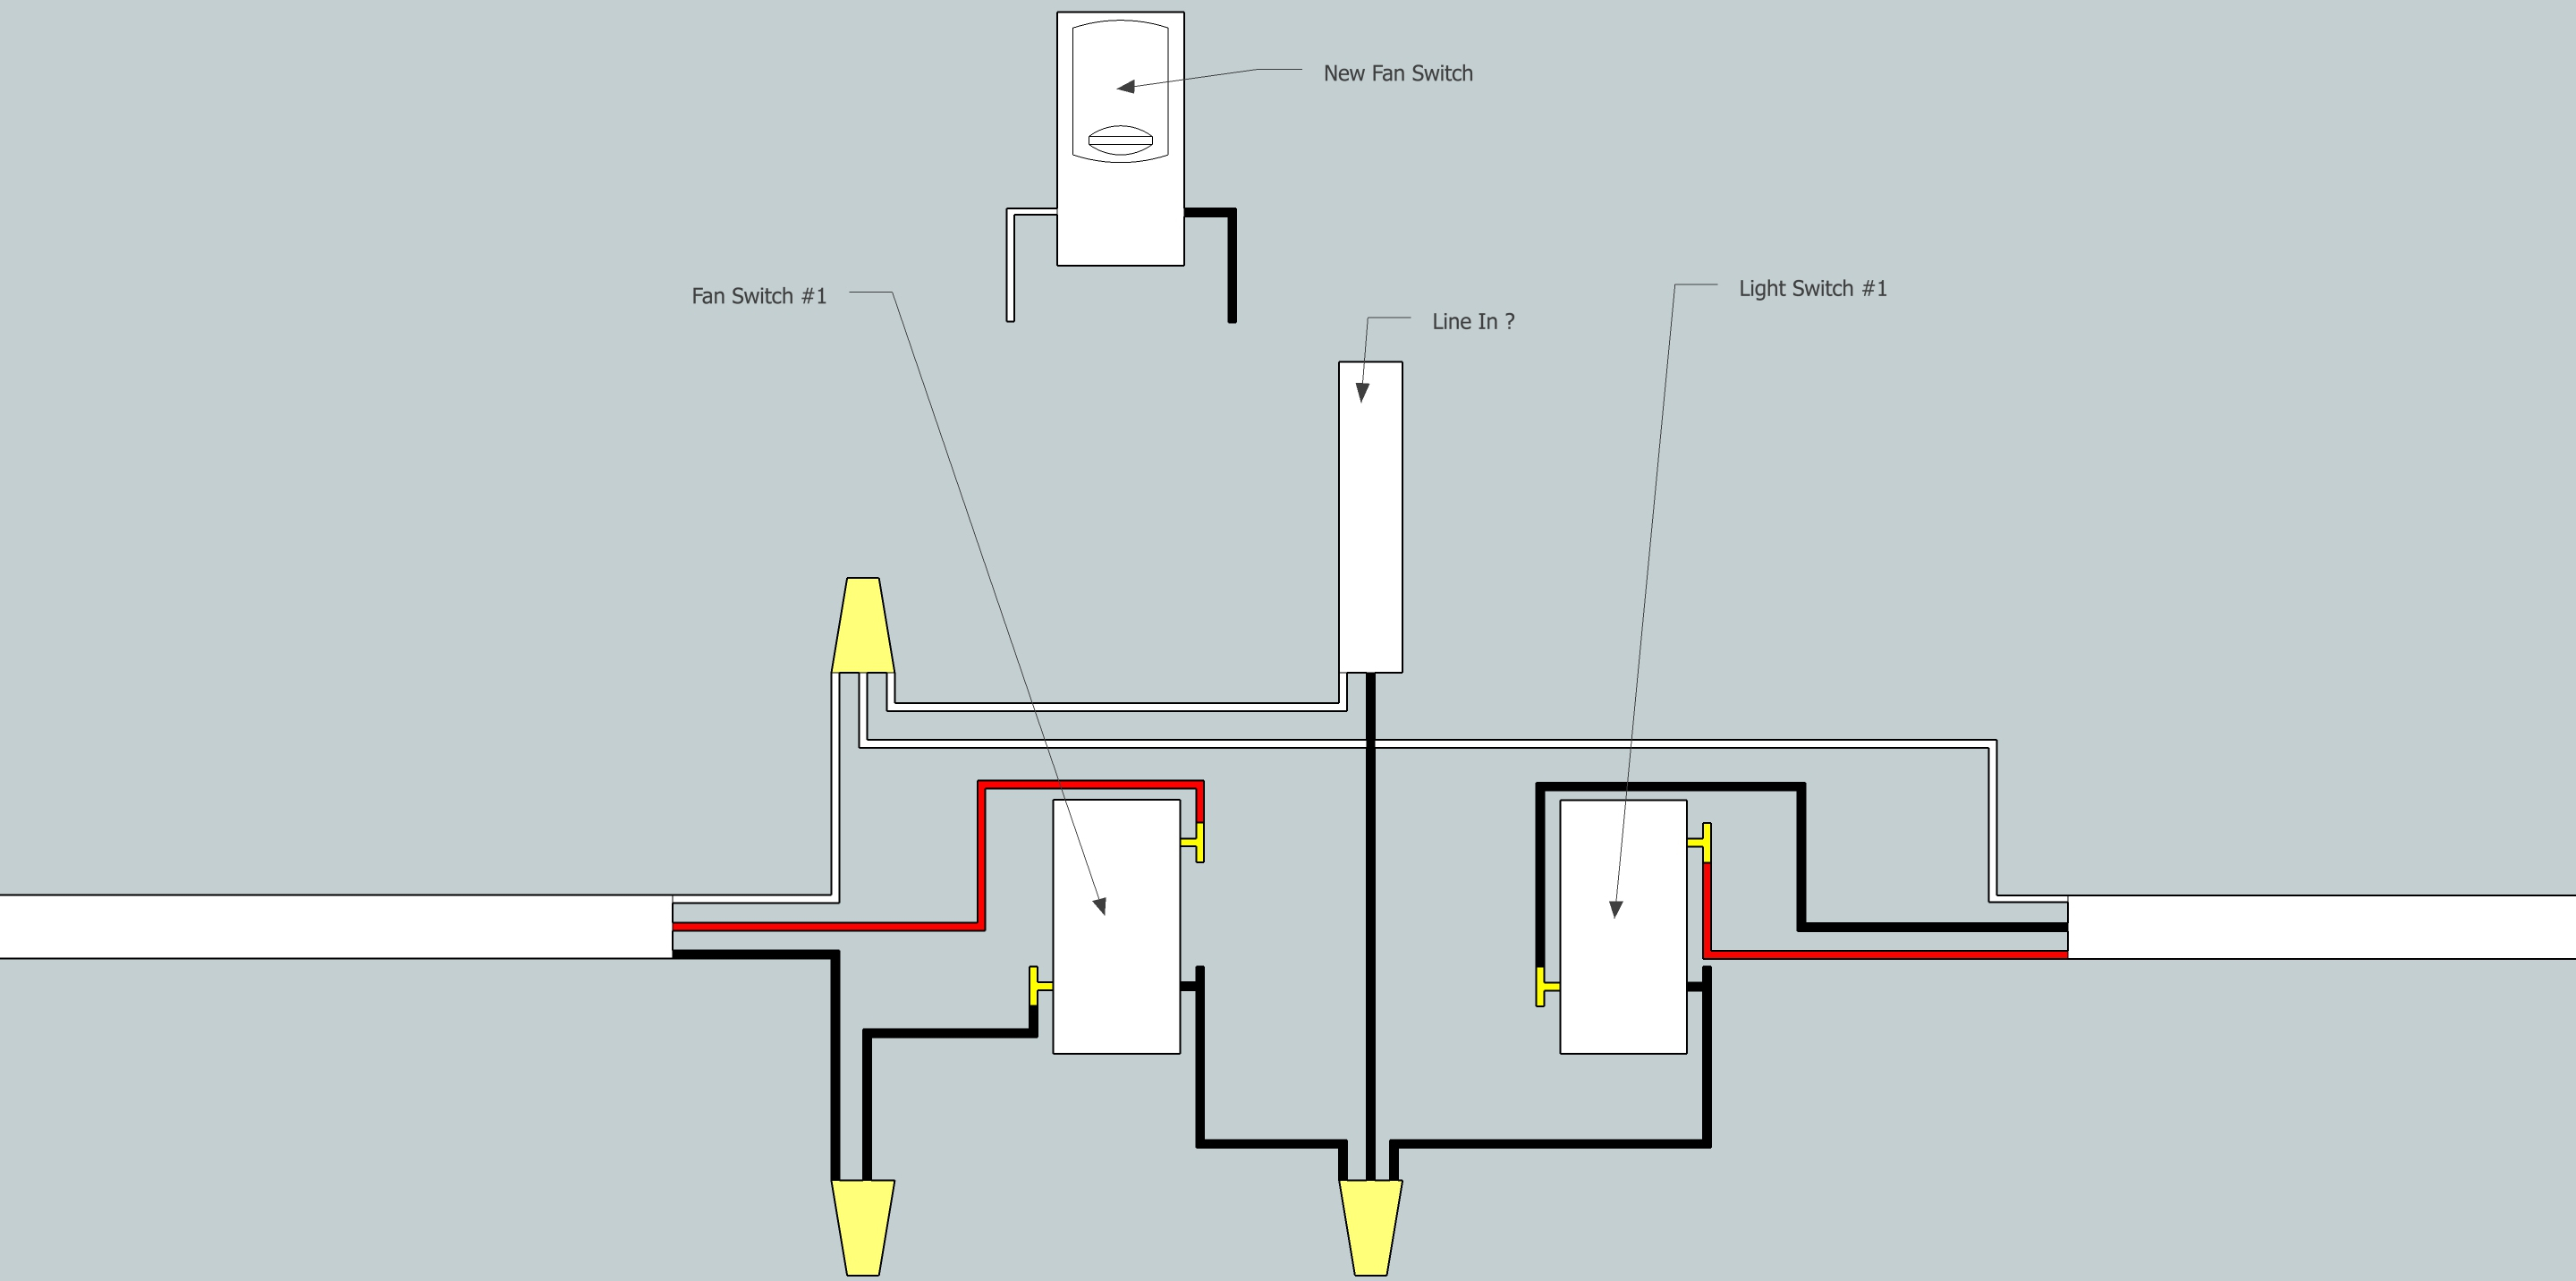 Electrical - Need Help Adding Fan To Existing 3-Way Switch Setup - Wiring Diagram 3 Way Switch